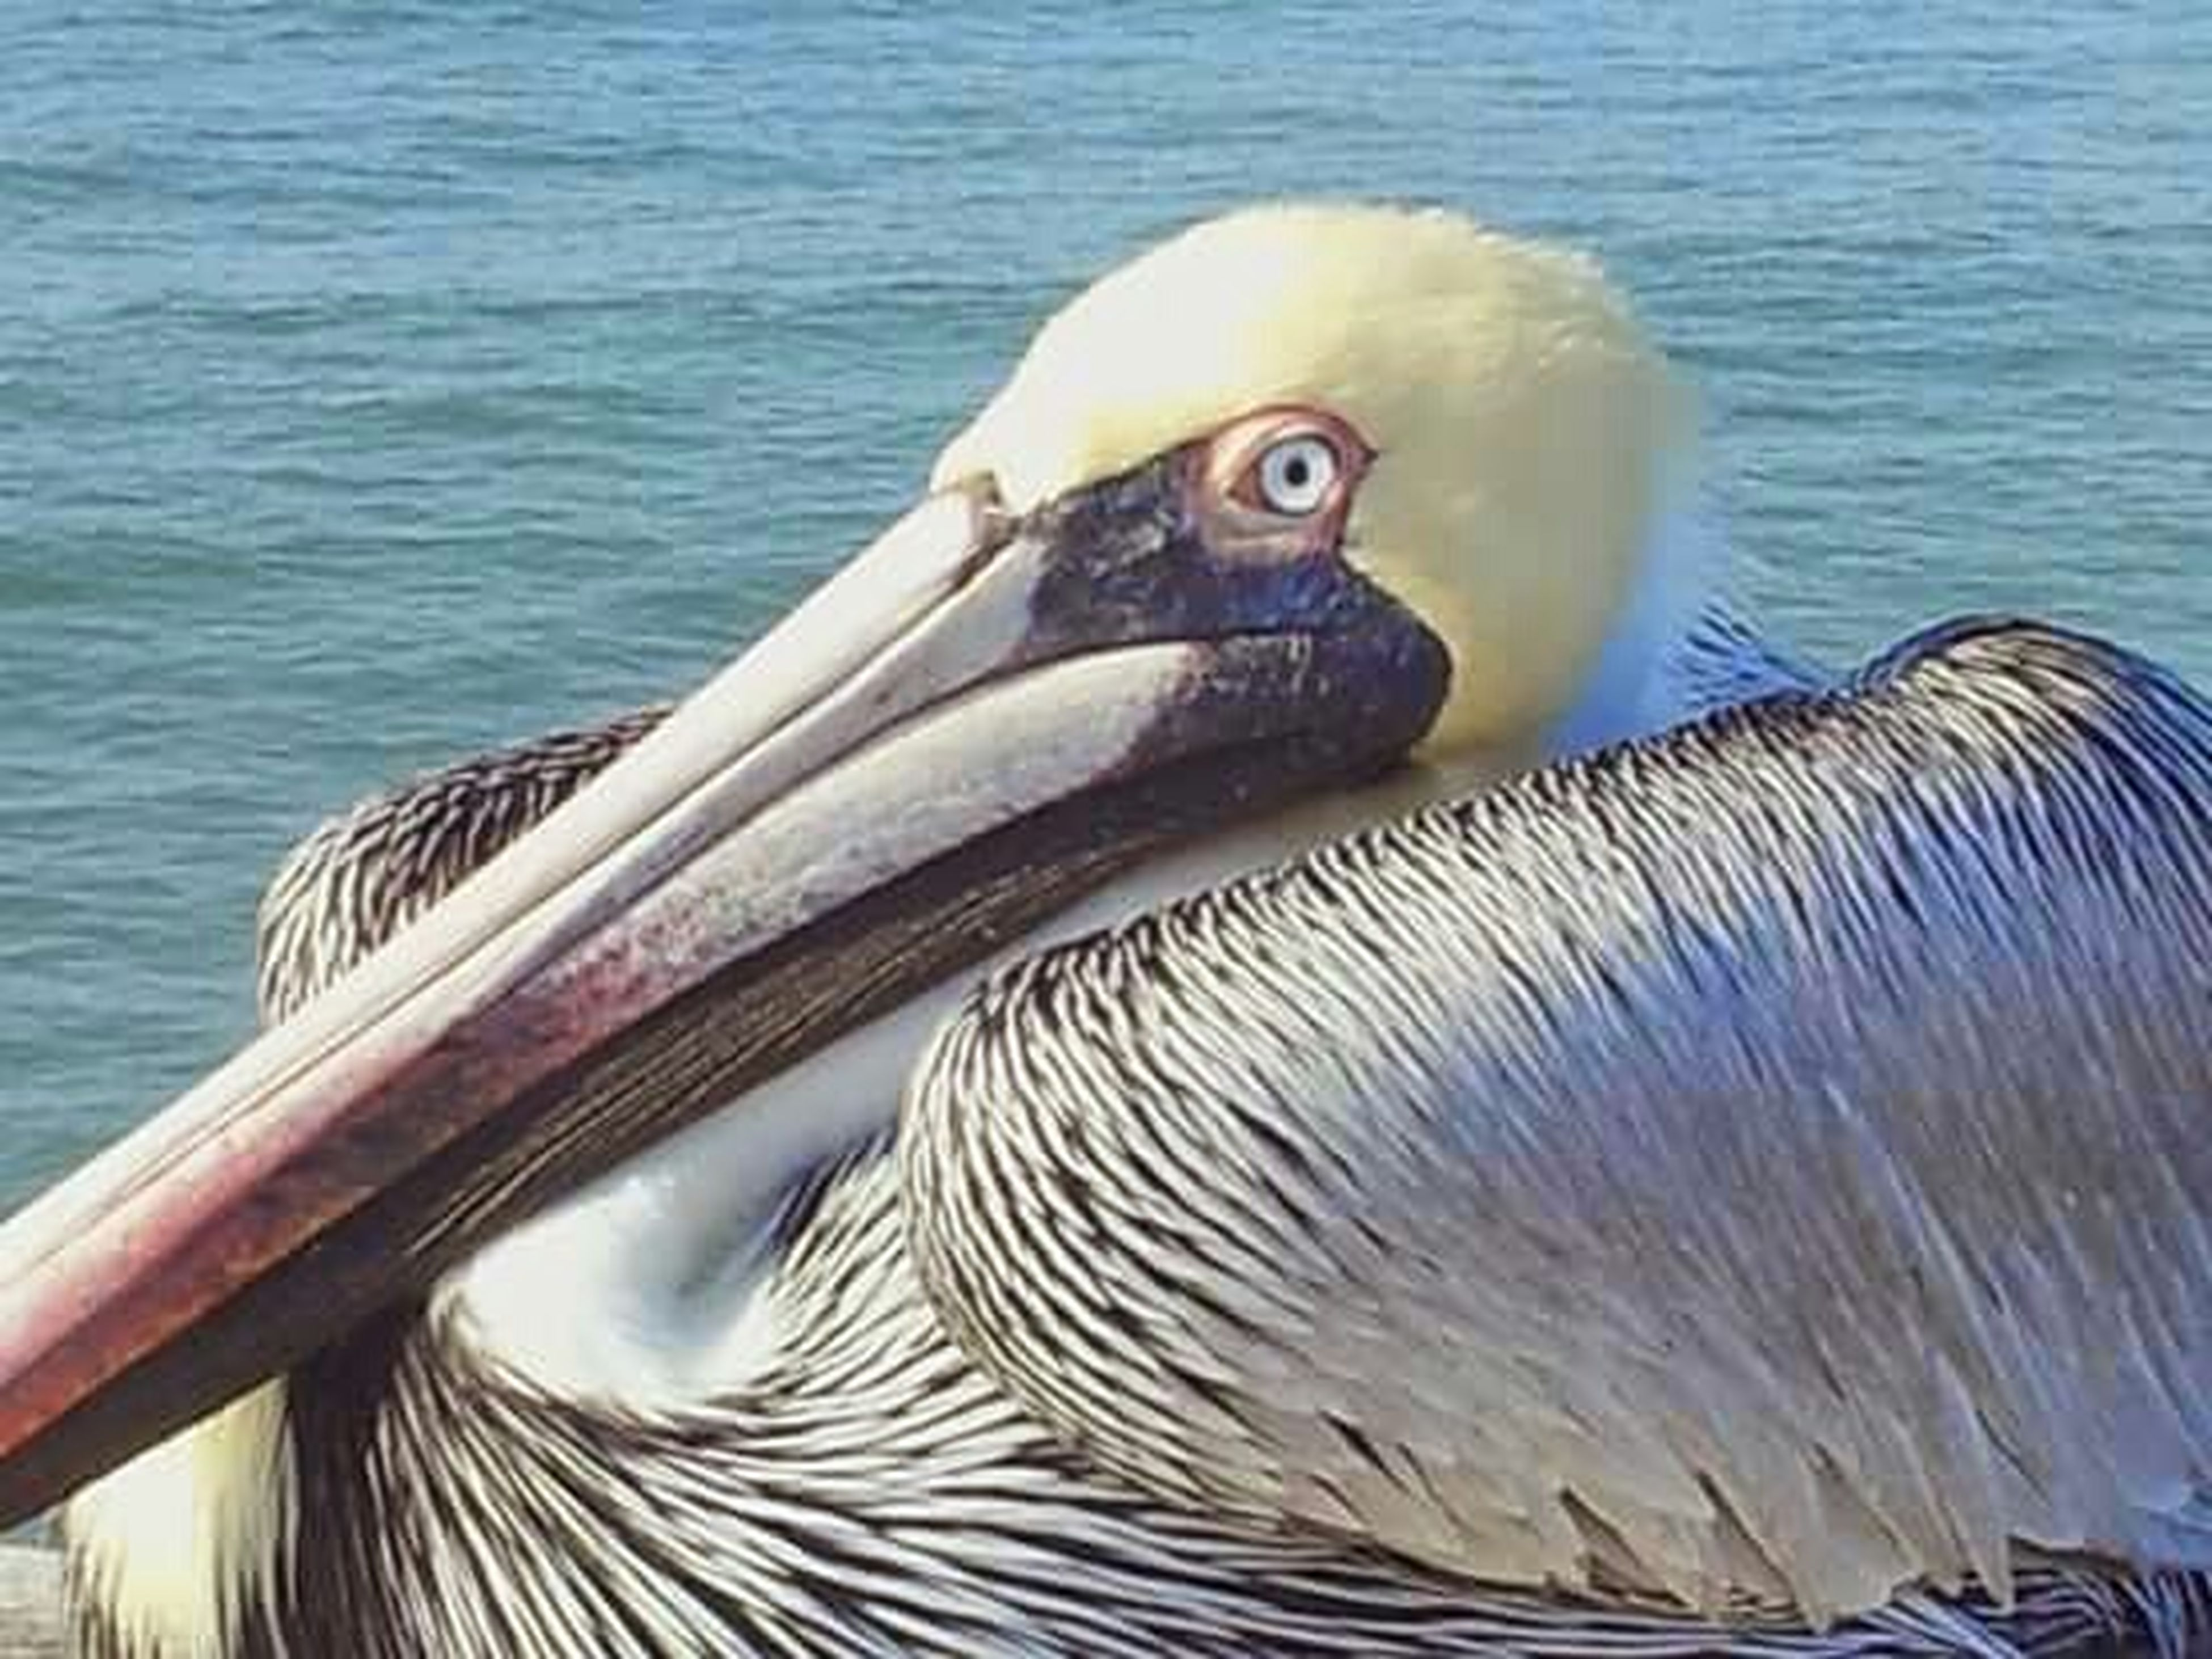 animal themes, bird, animals in the wild, wildlife, water, one animal, beak, pelican, swimming, lake, animal head, nature, rippled, close-up, swan, side view, water bird, outdoors, day